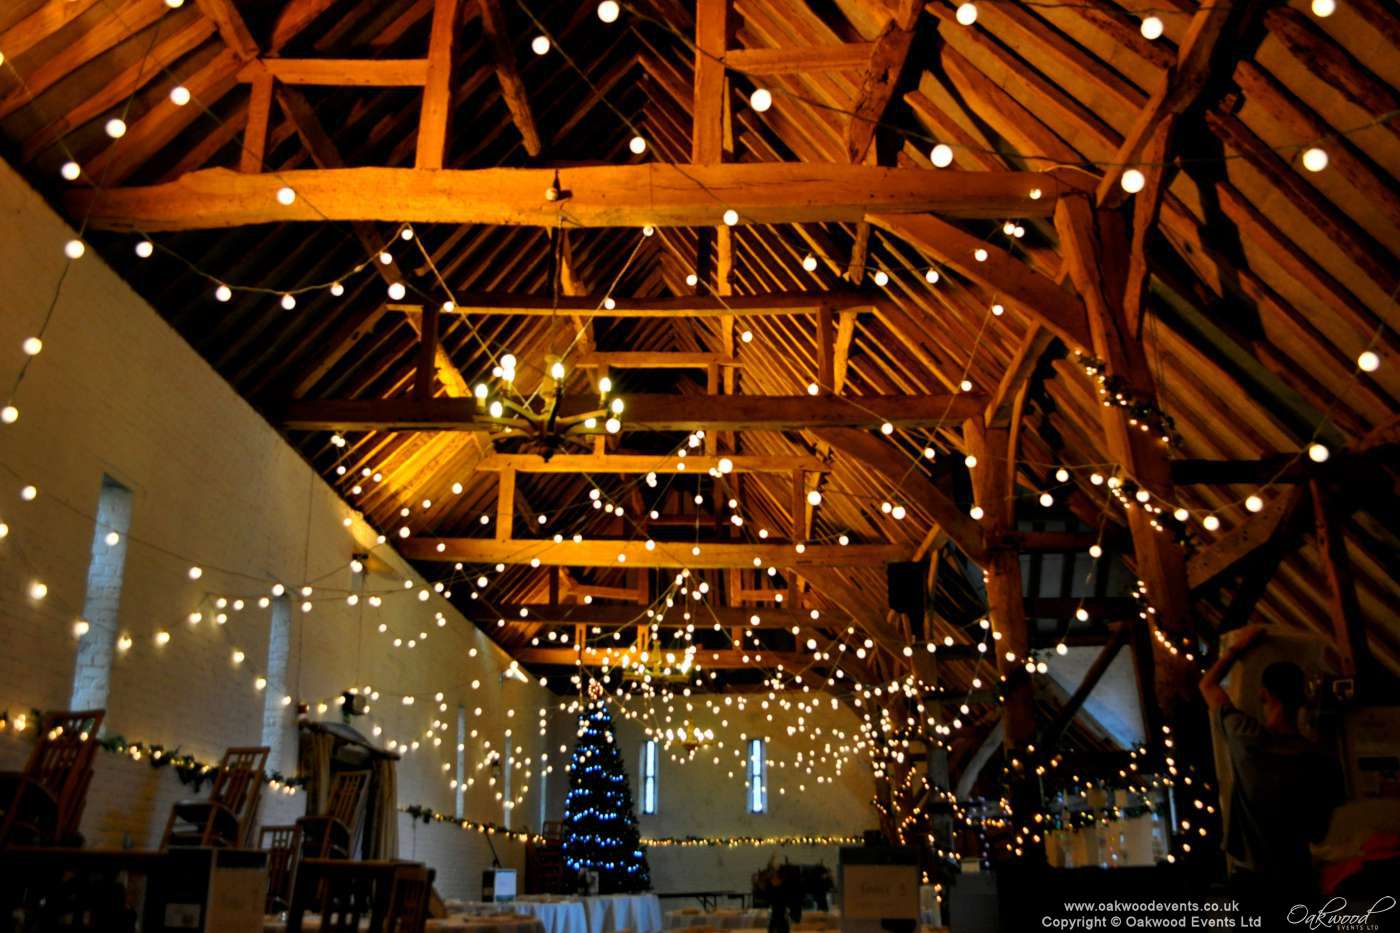 random-loops-of-festoon-lights Soft Lighting Ideas on desk ideas, soft makeup ideas, soft light bulbs, french doors ideas, wood paneling ideas, soft tile ideas, soft flooring ideas, delicious food ideas, soft photography, frosted glass ideas, soft food ideas, fireplaces ideas, plants ideas, wine ideas, living room light fixture ideas, soft sculpture ideas, soft fabrics, soft interior design ideas,